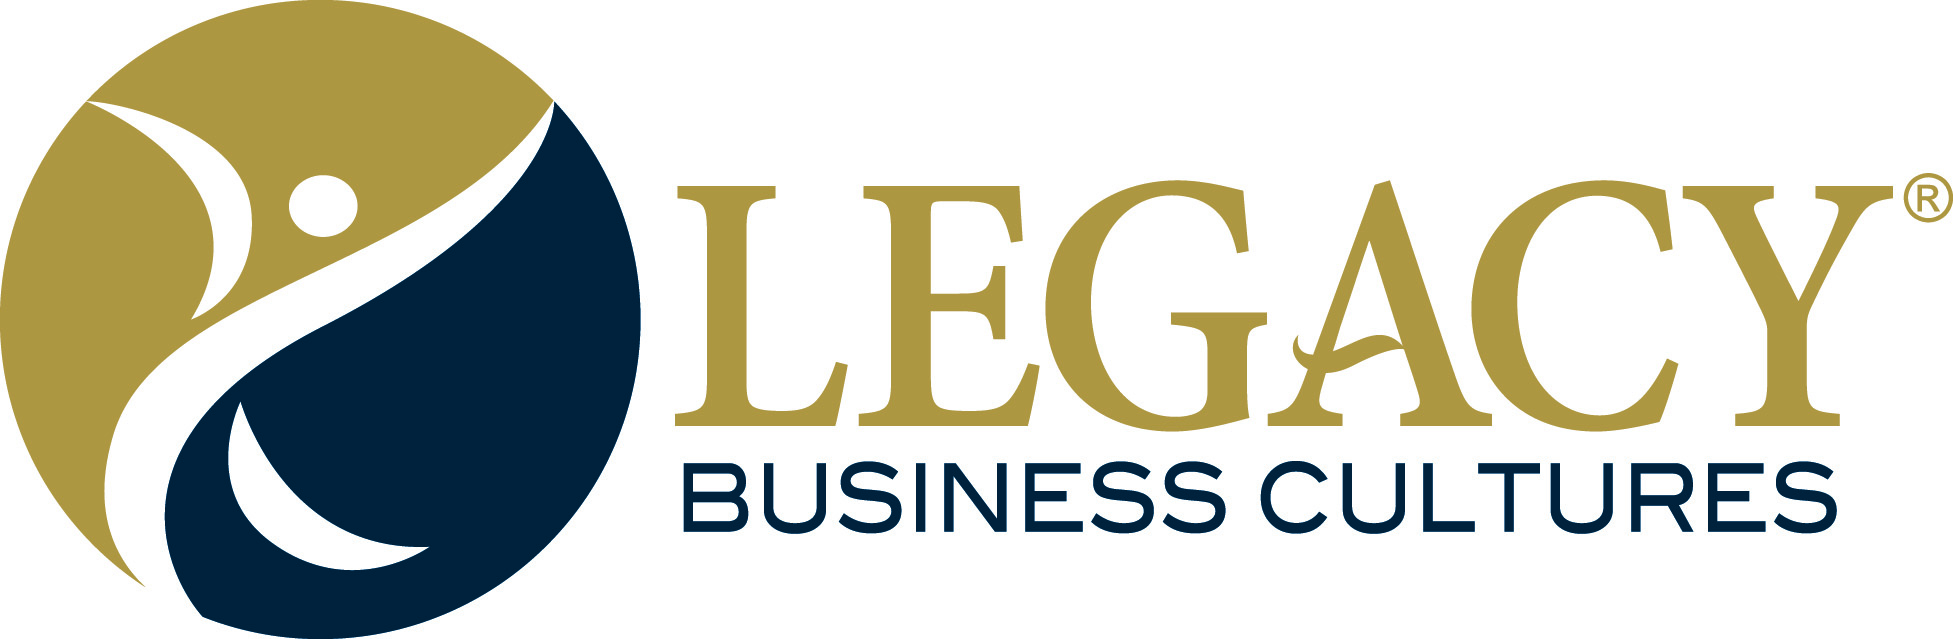 LEGACY BUSINESS CULTURES Logo